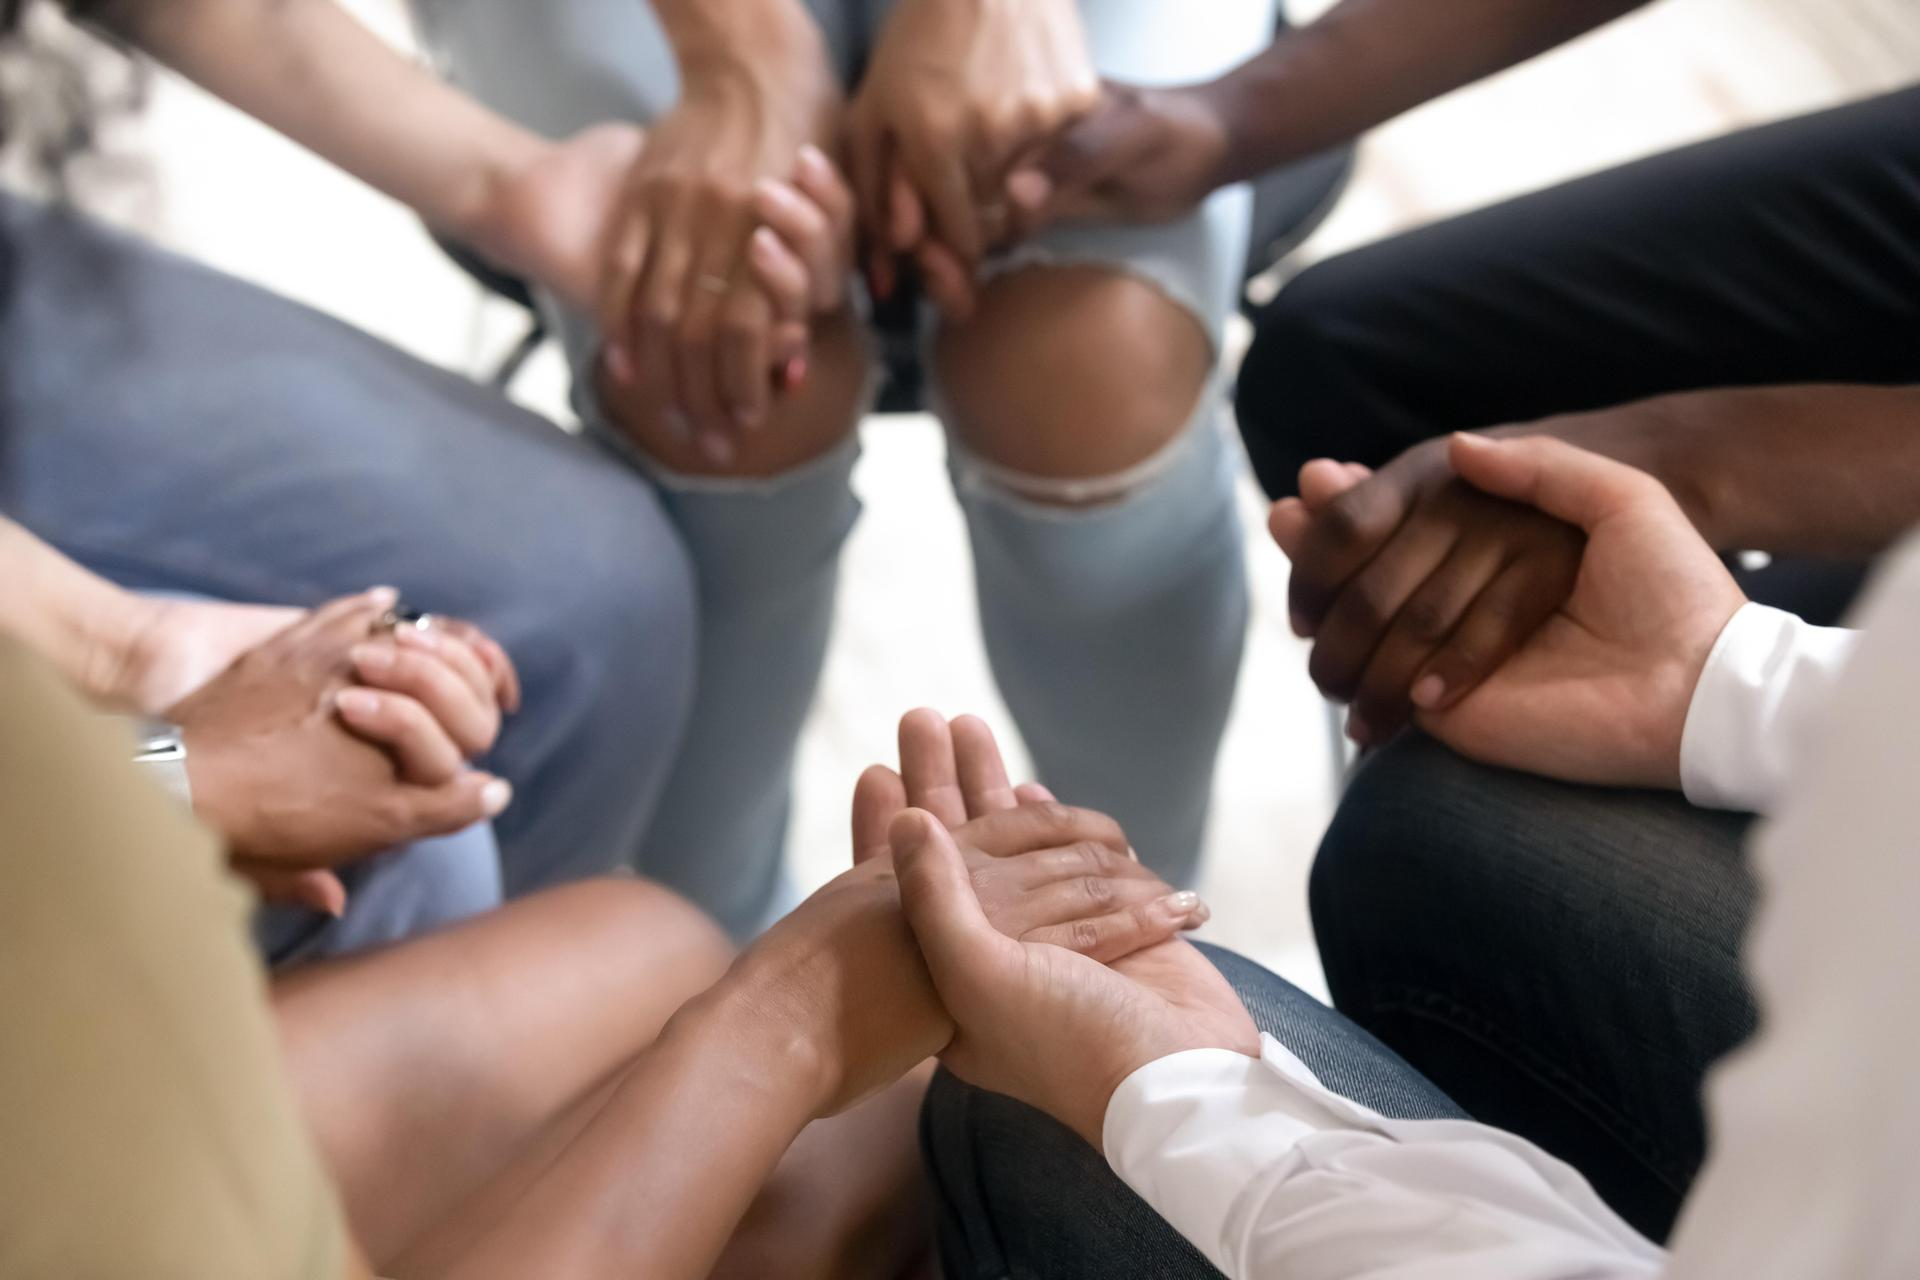 Group of adults in a circle holding hands.